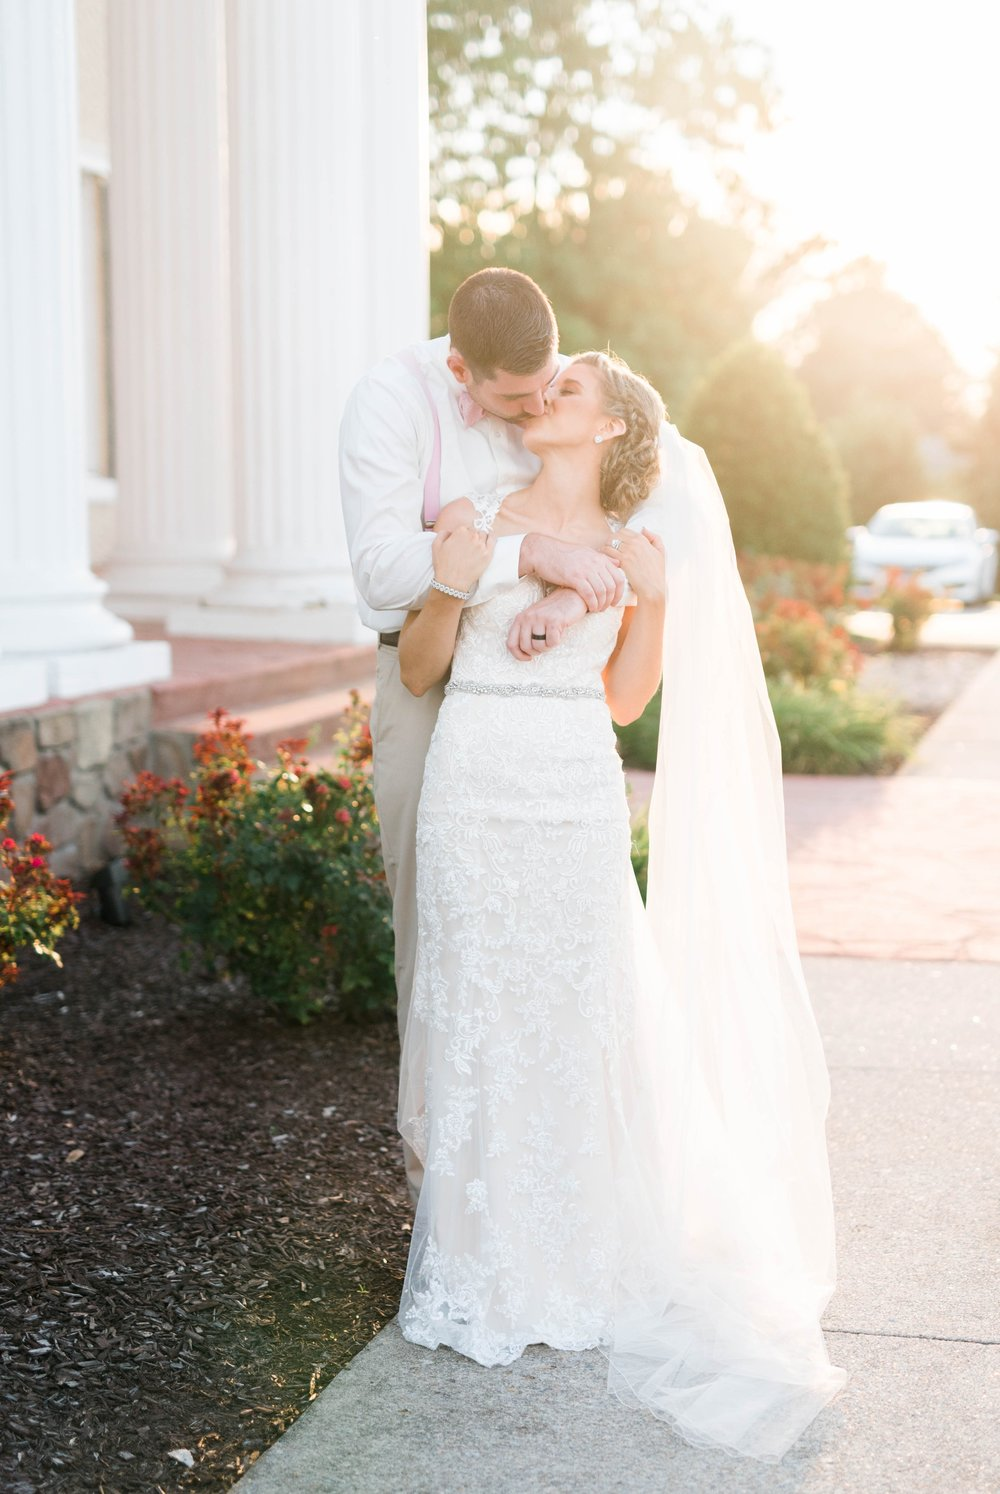 BedfordColumns_EntwinedEvents_Lynchburgwedding_VIrginiaweddingphotographer_ALlisonNIck 20.jpg